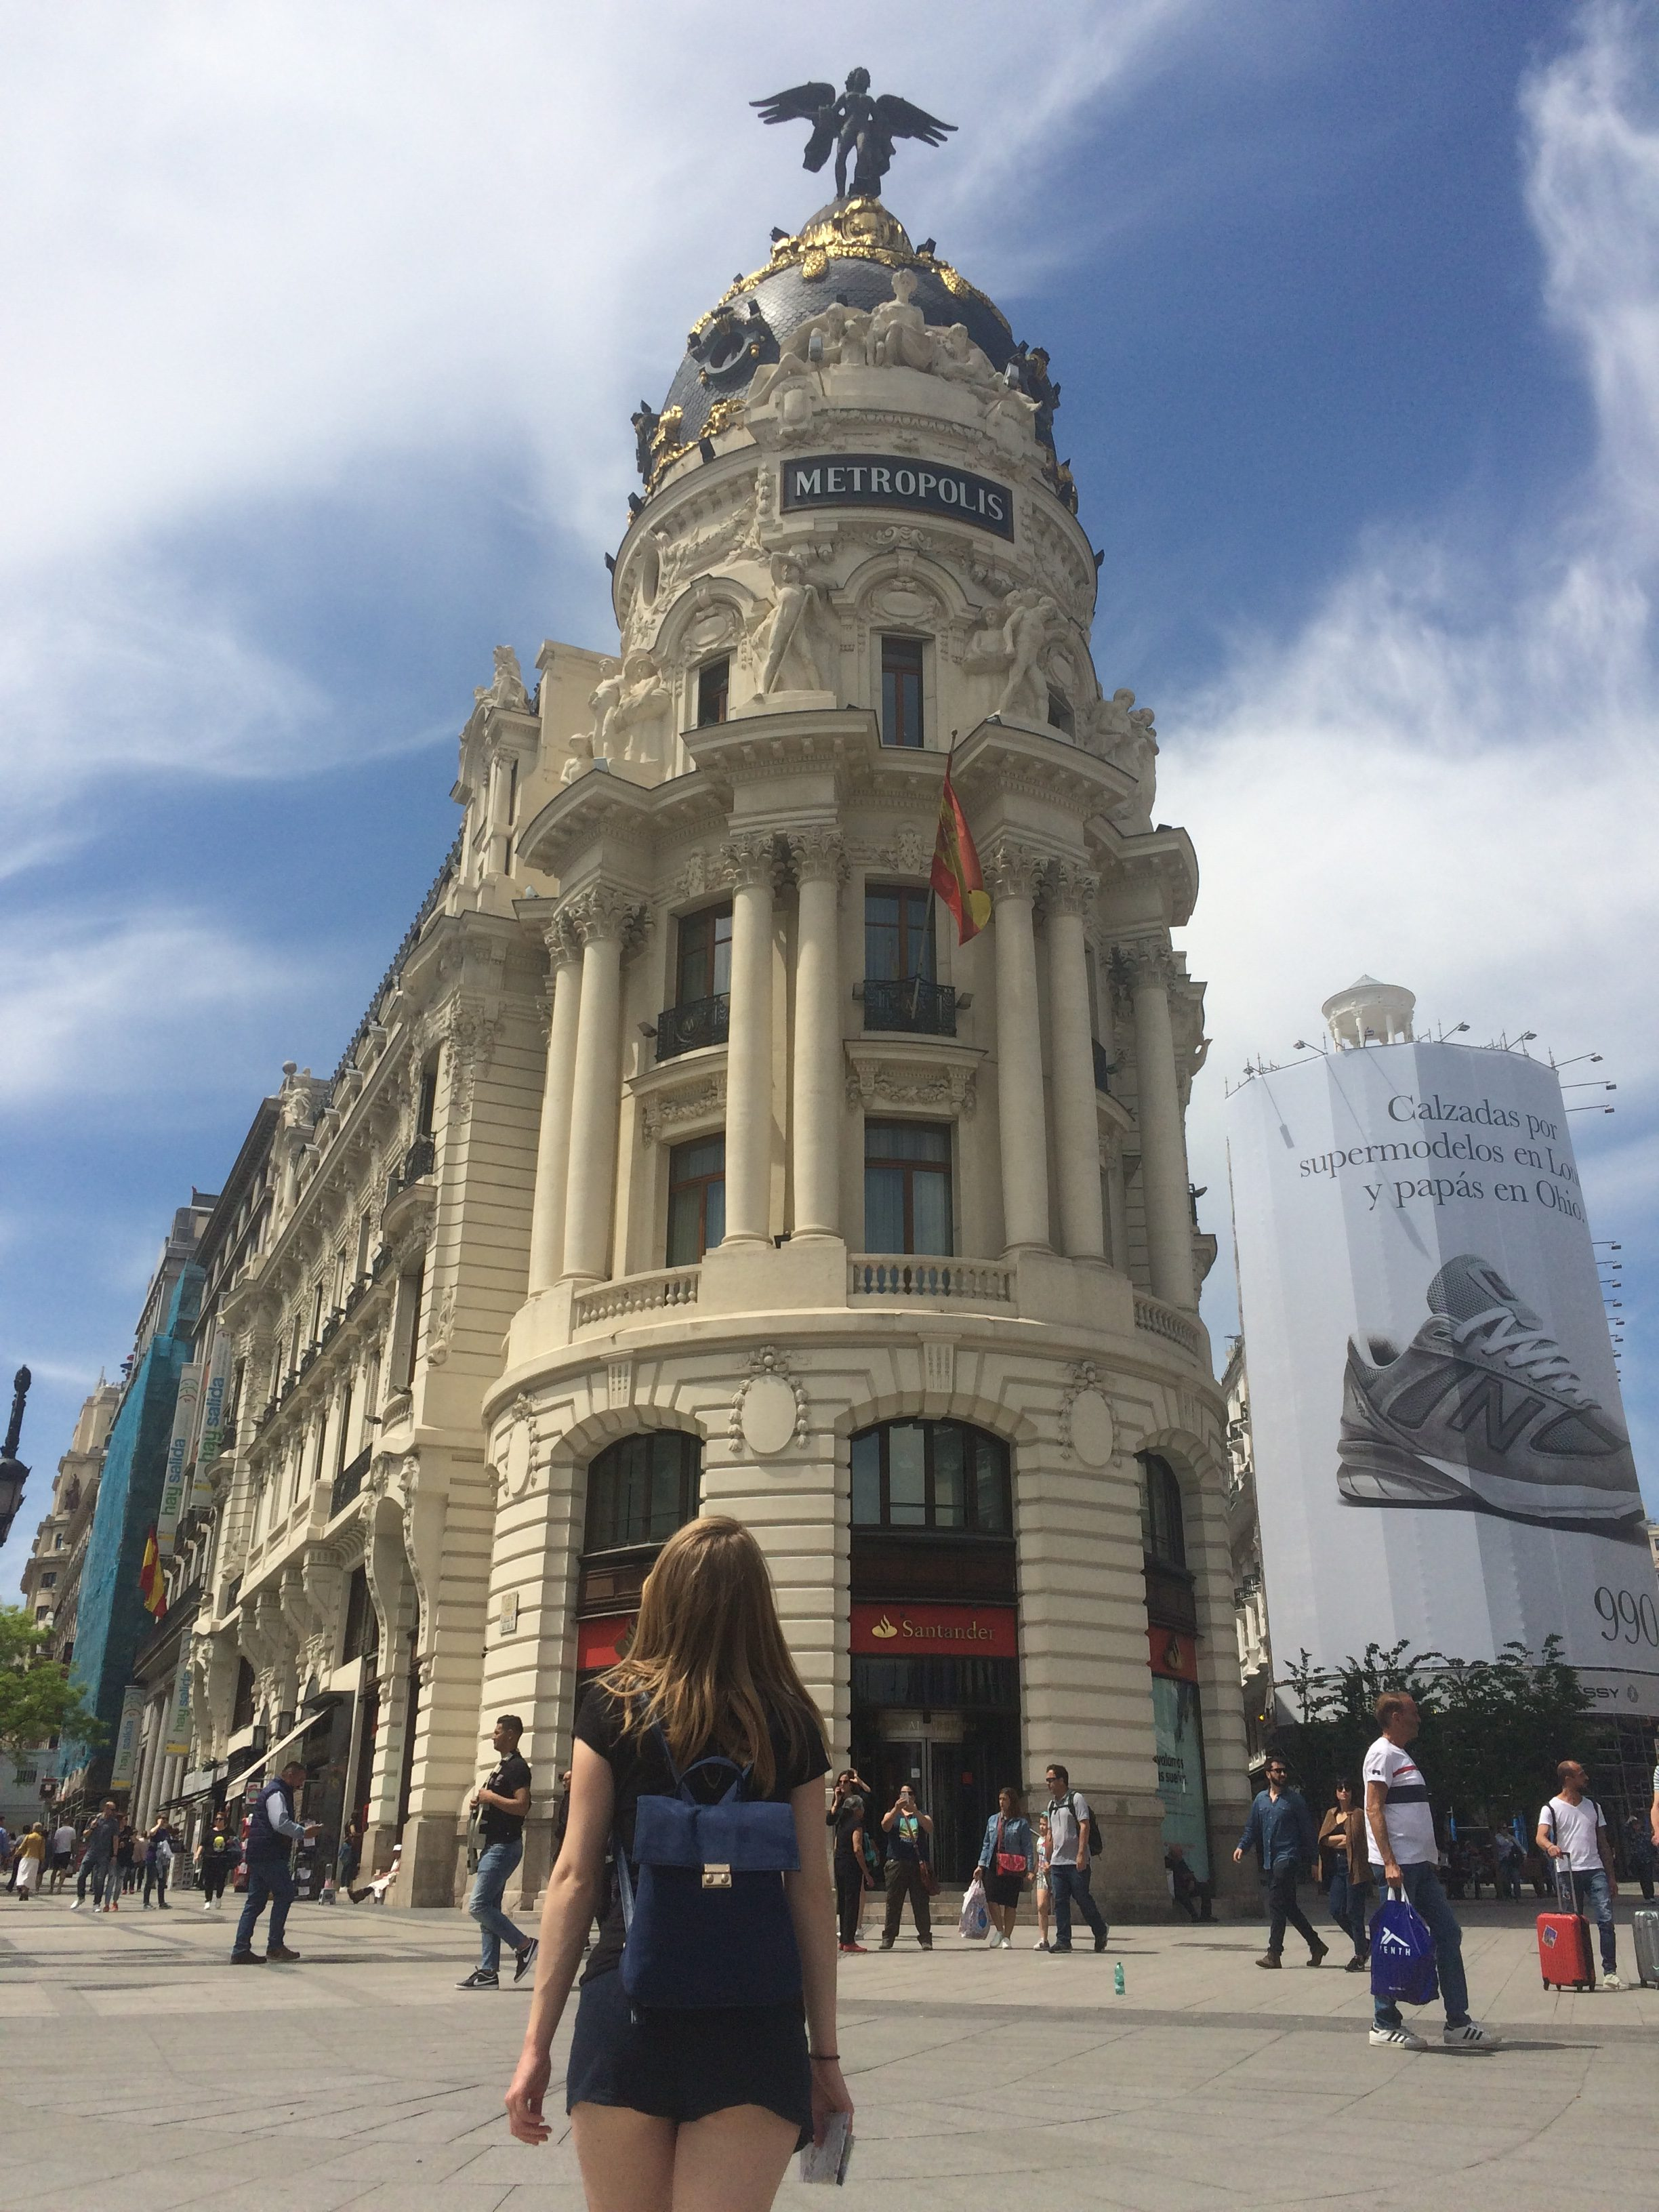 The buildings along the Gran Via are nothing short of spectacular